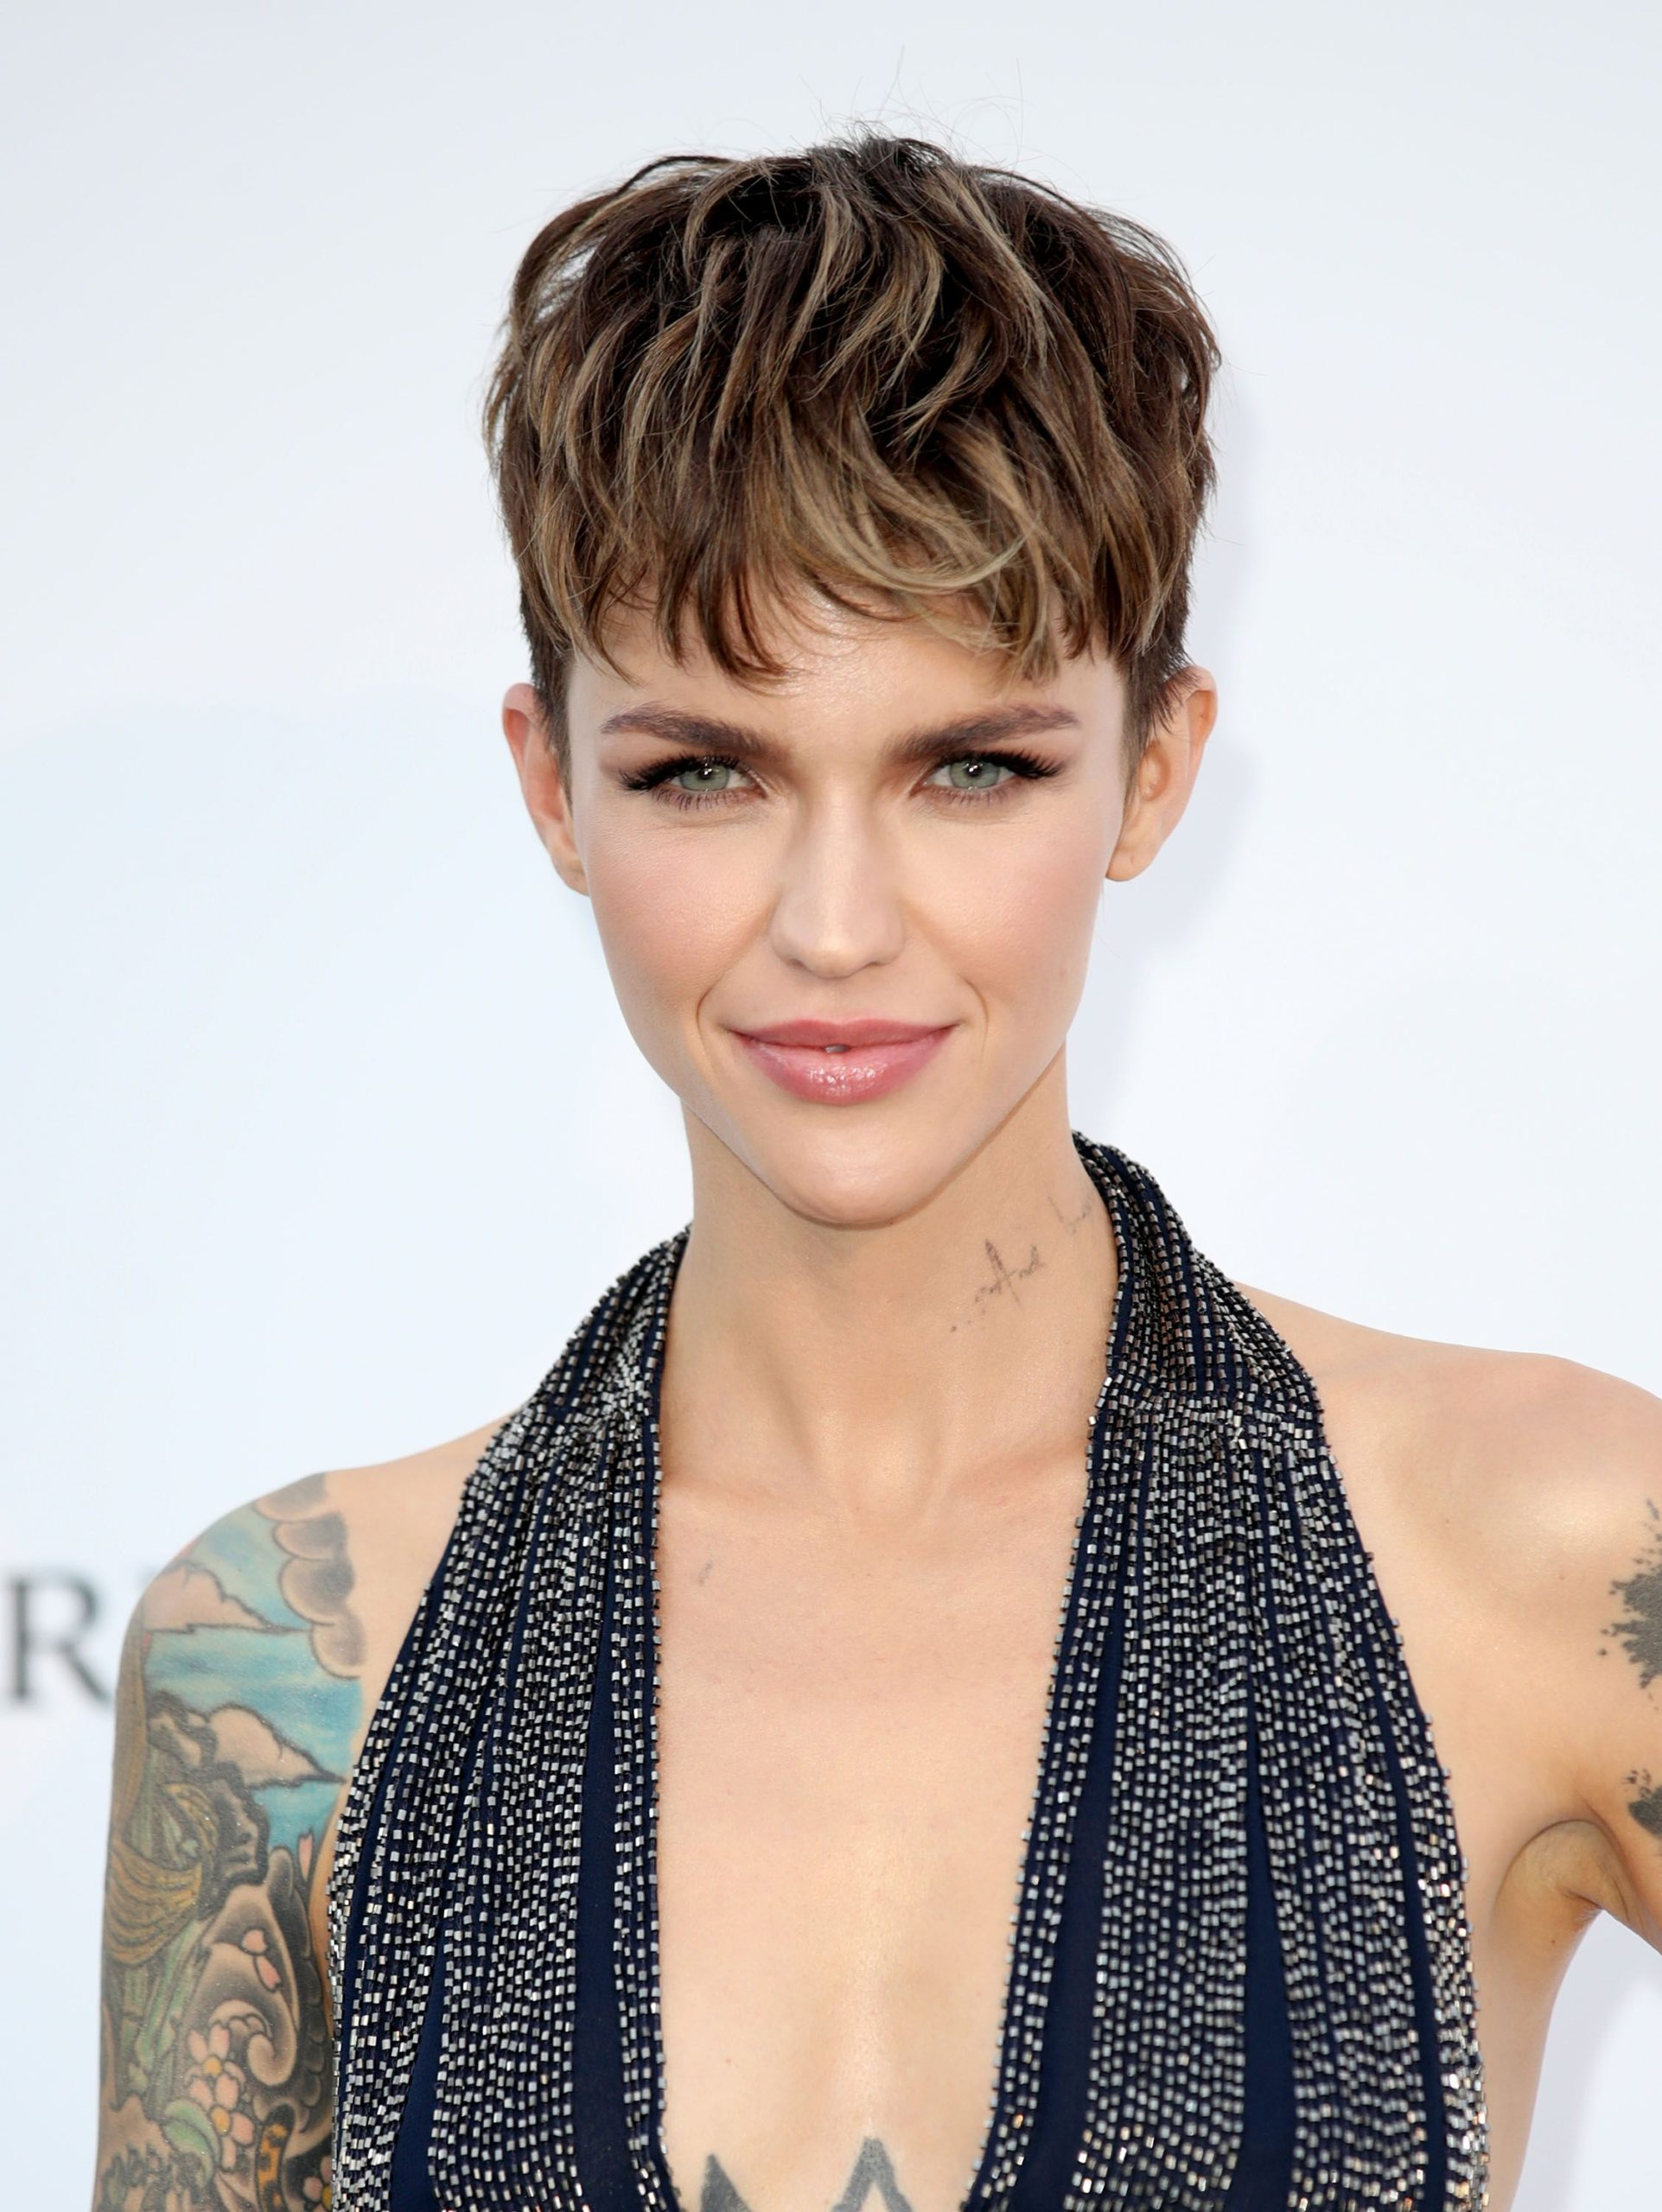 Bold-pixie-cut-1-scaled 70+ Outdated Hairstyle Ideas Coming Back in 2021